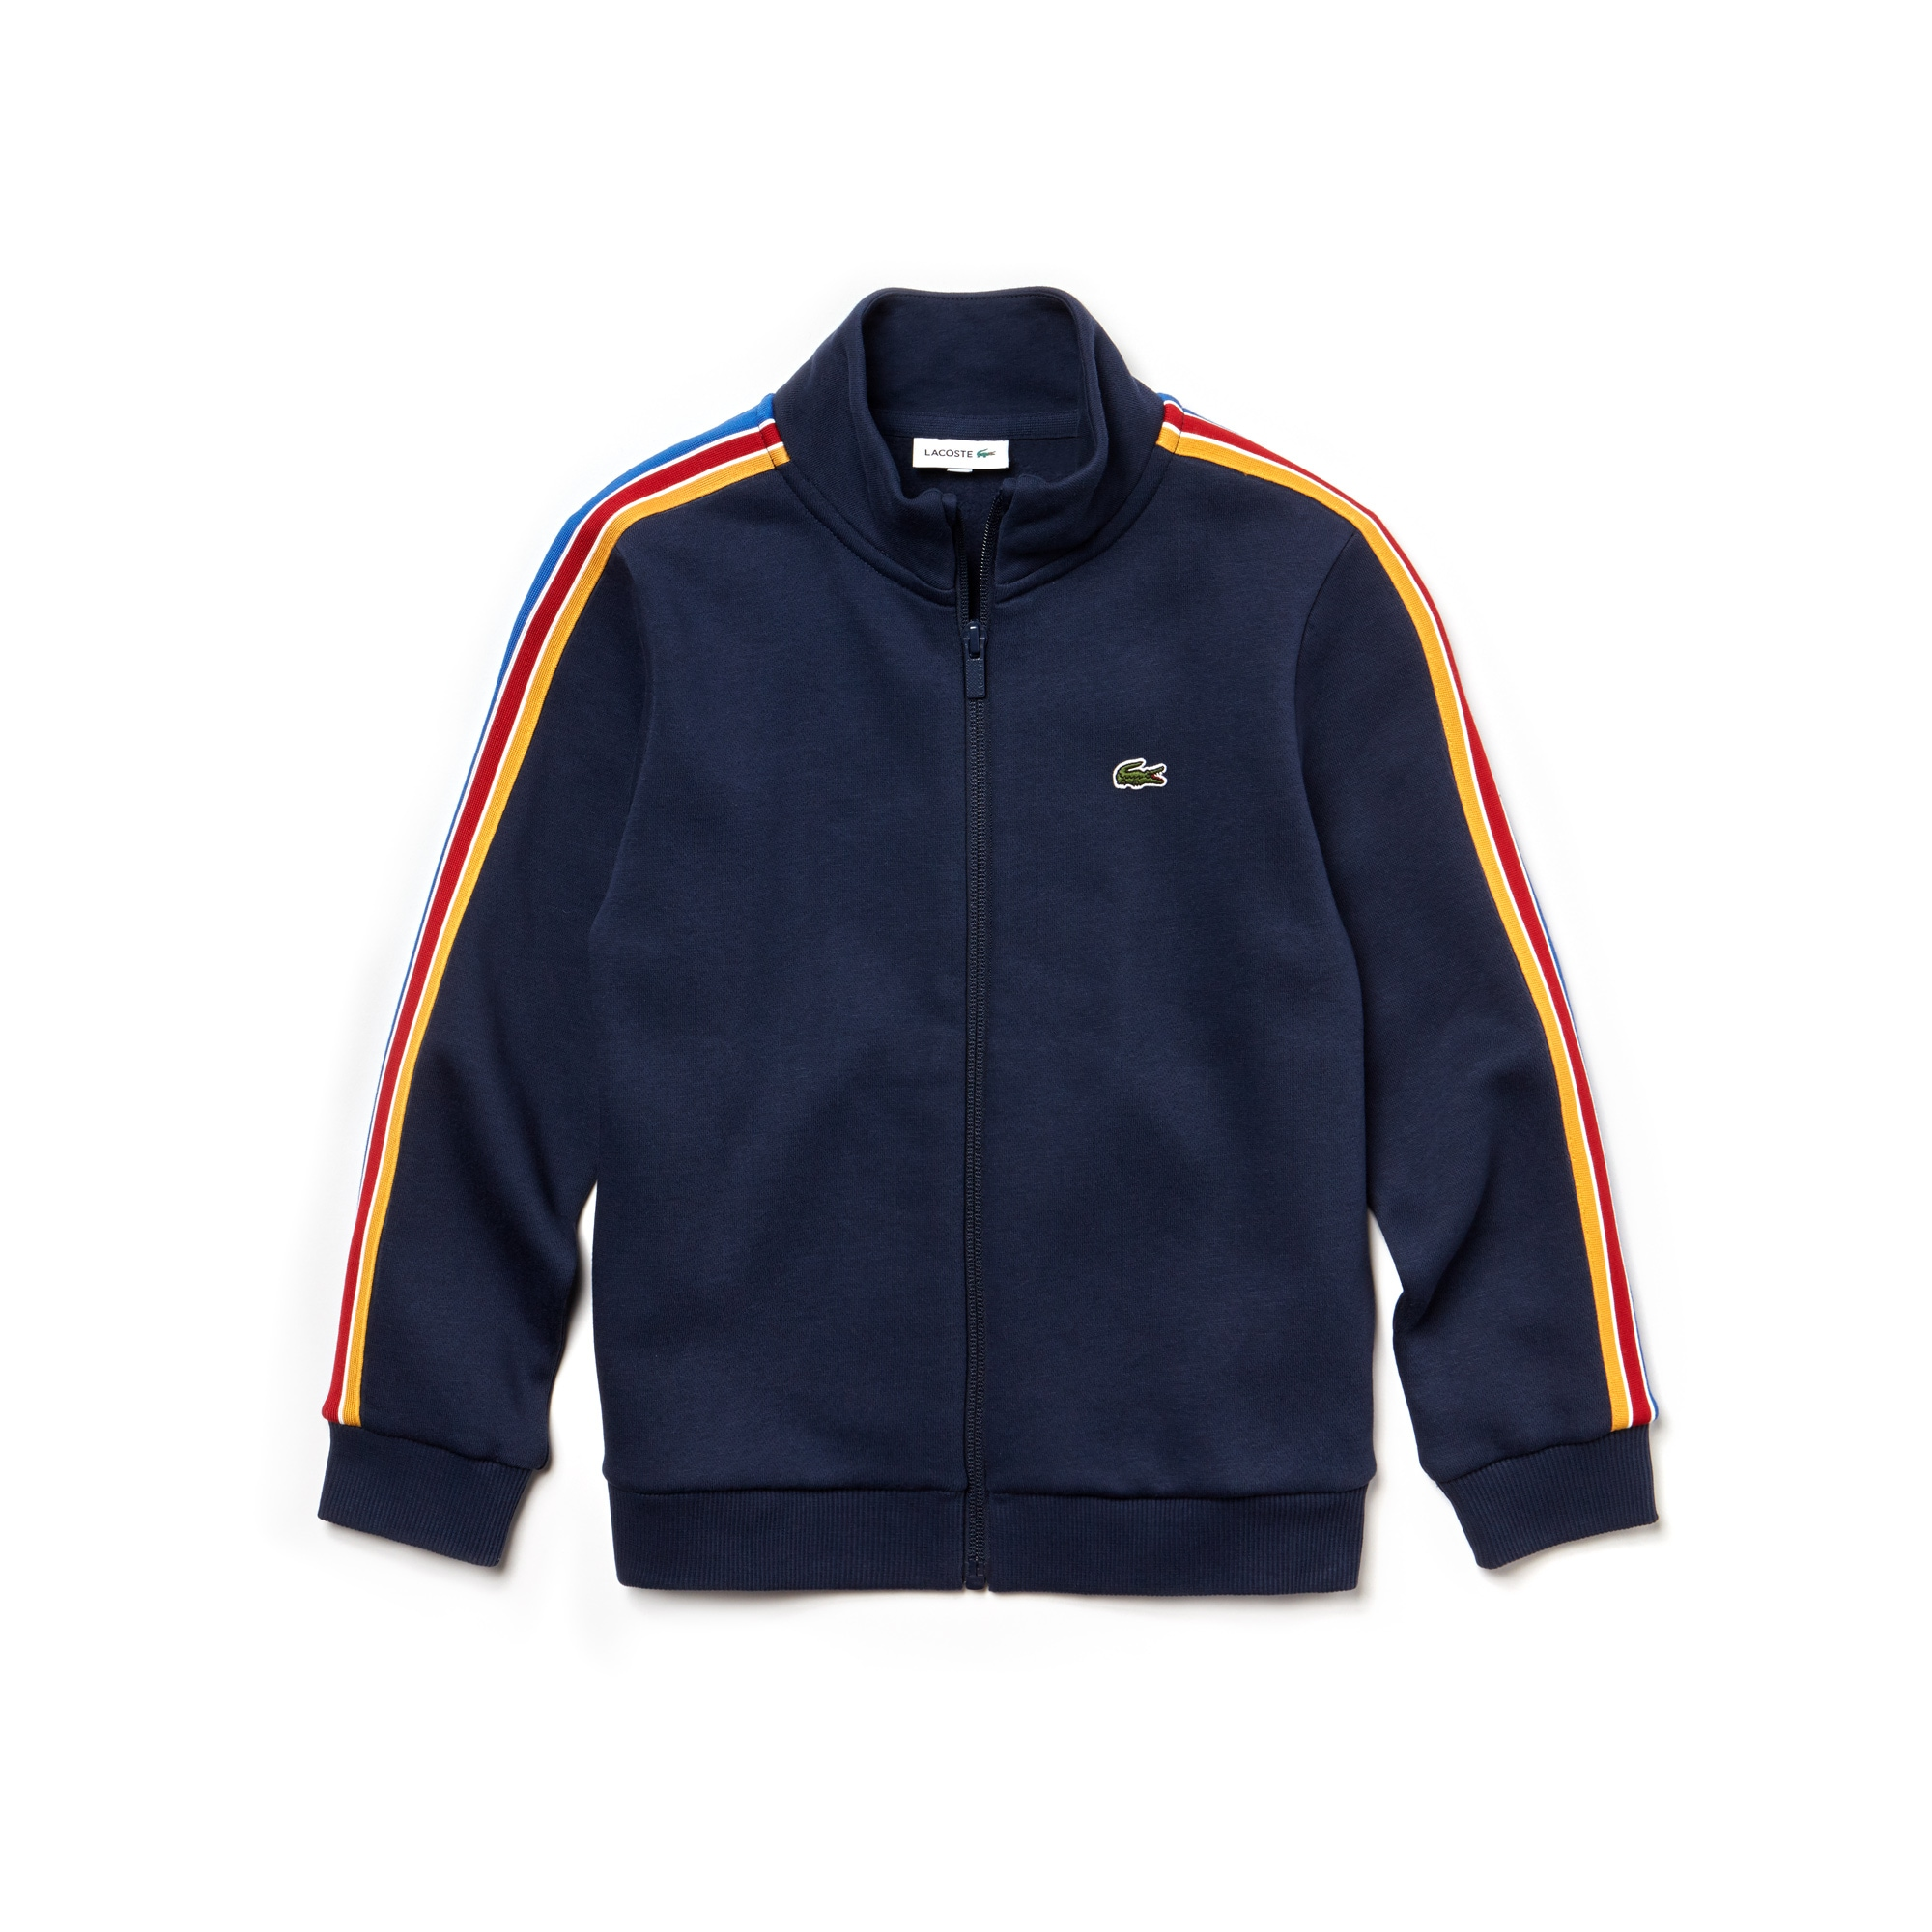 Boys' Stand-Up Collar Colored Bands Zippered Fleece Sweatshirt